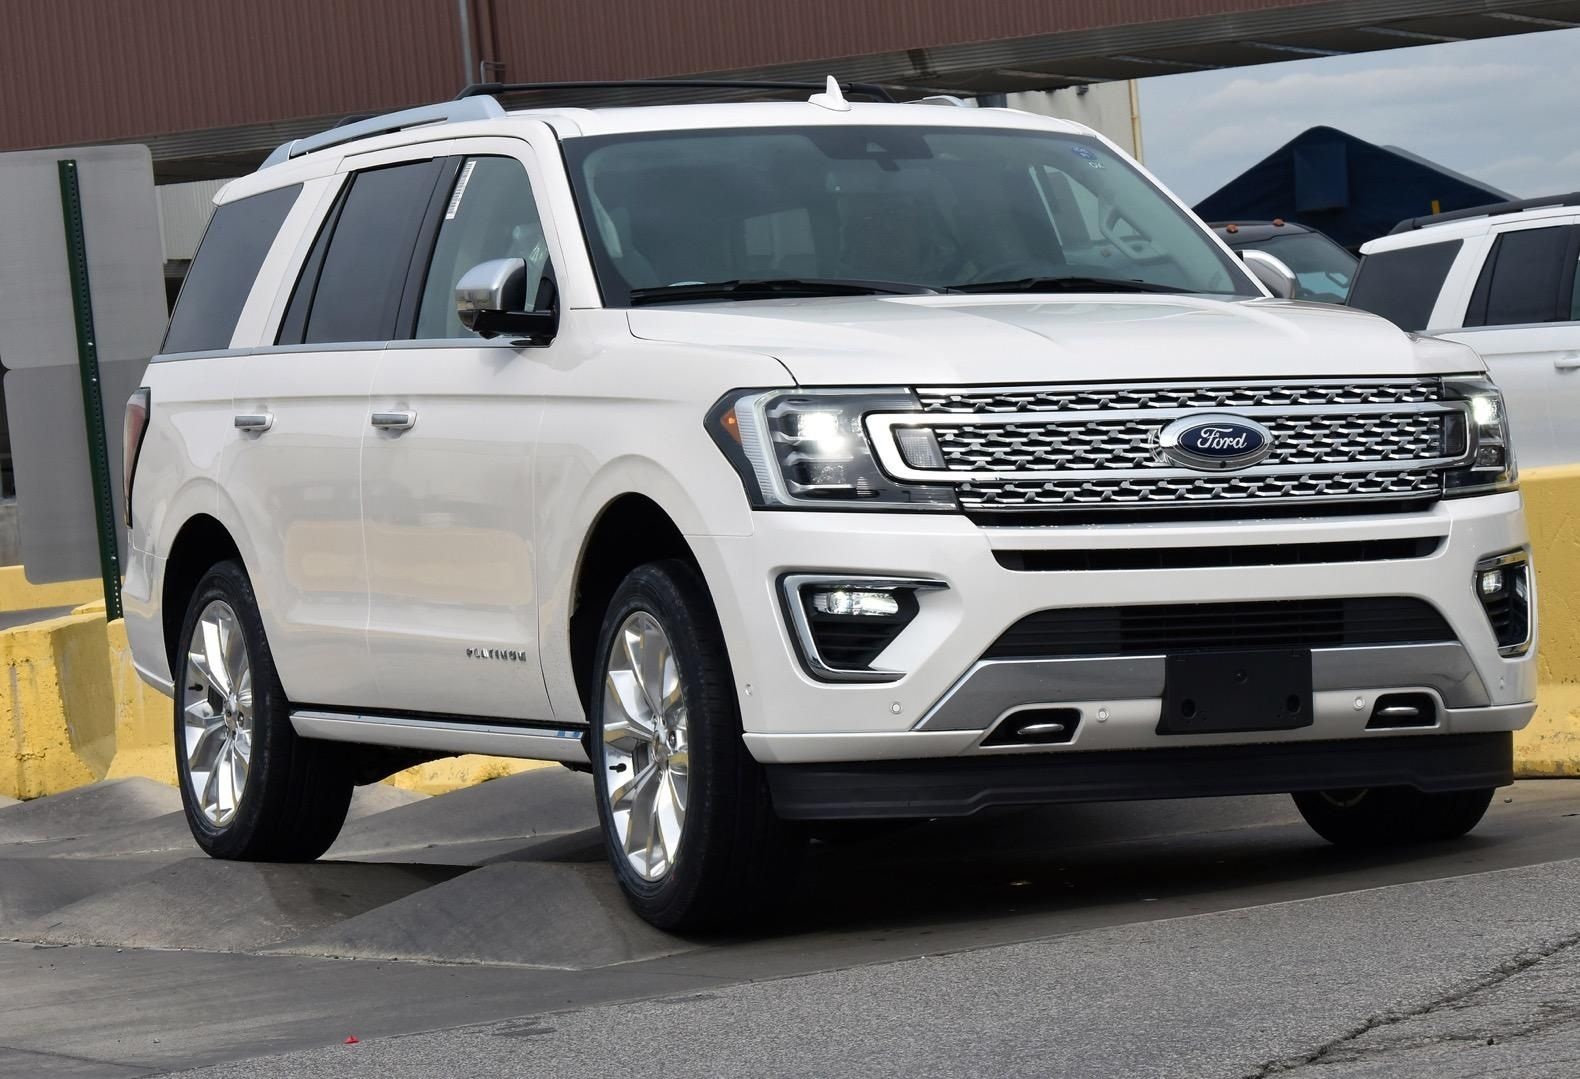 2018 Ford Expedition Rated At 20 Mpg Beats The Suburban The